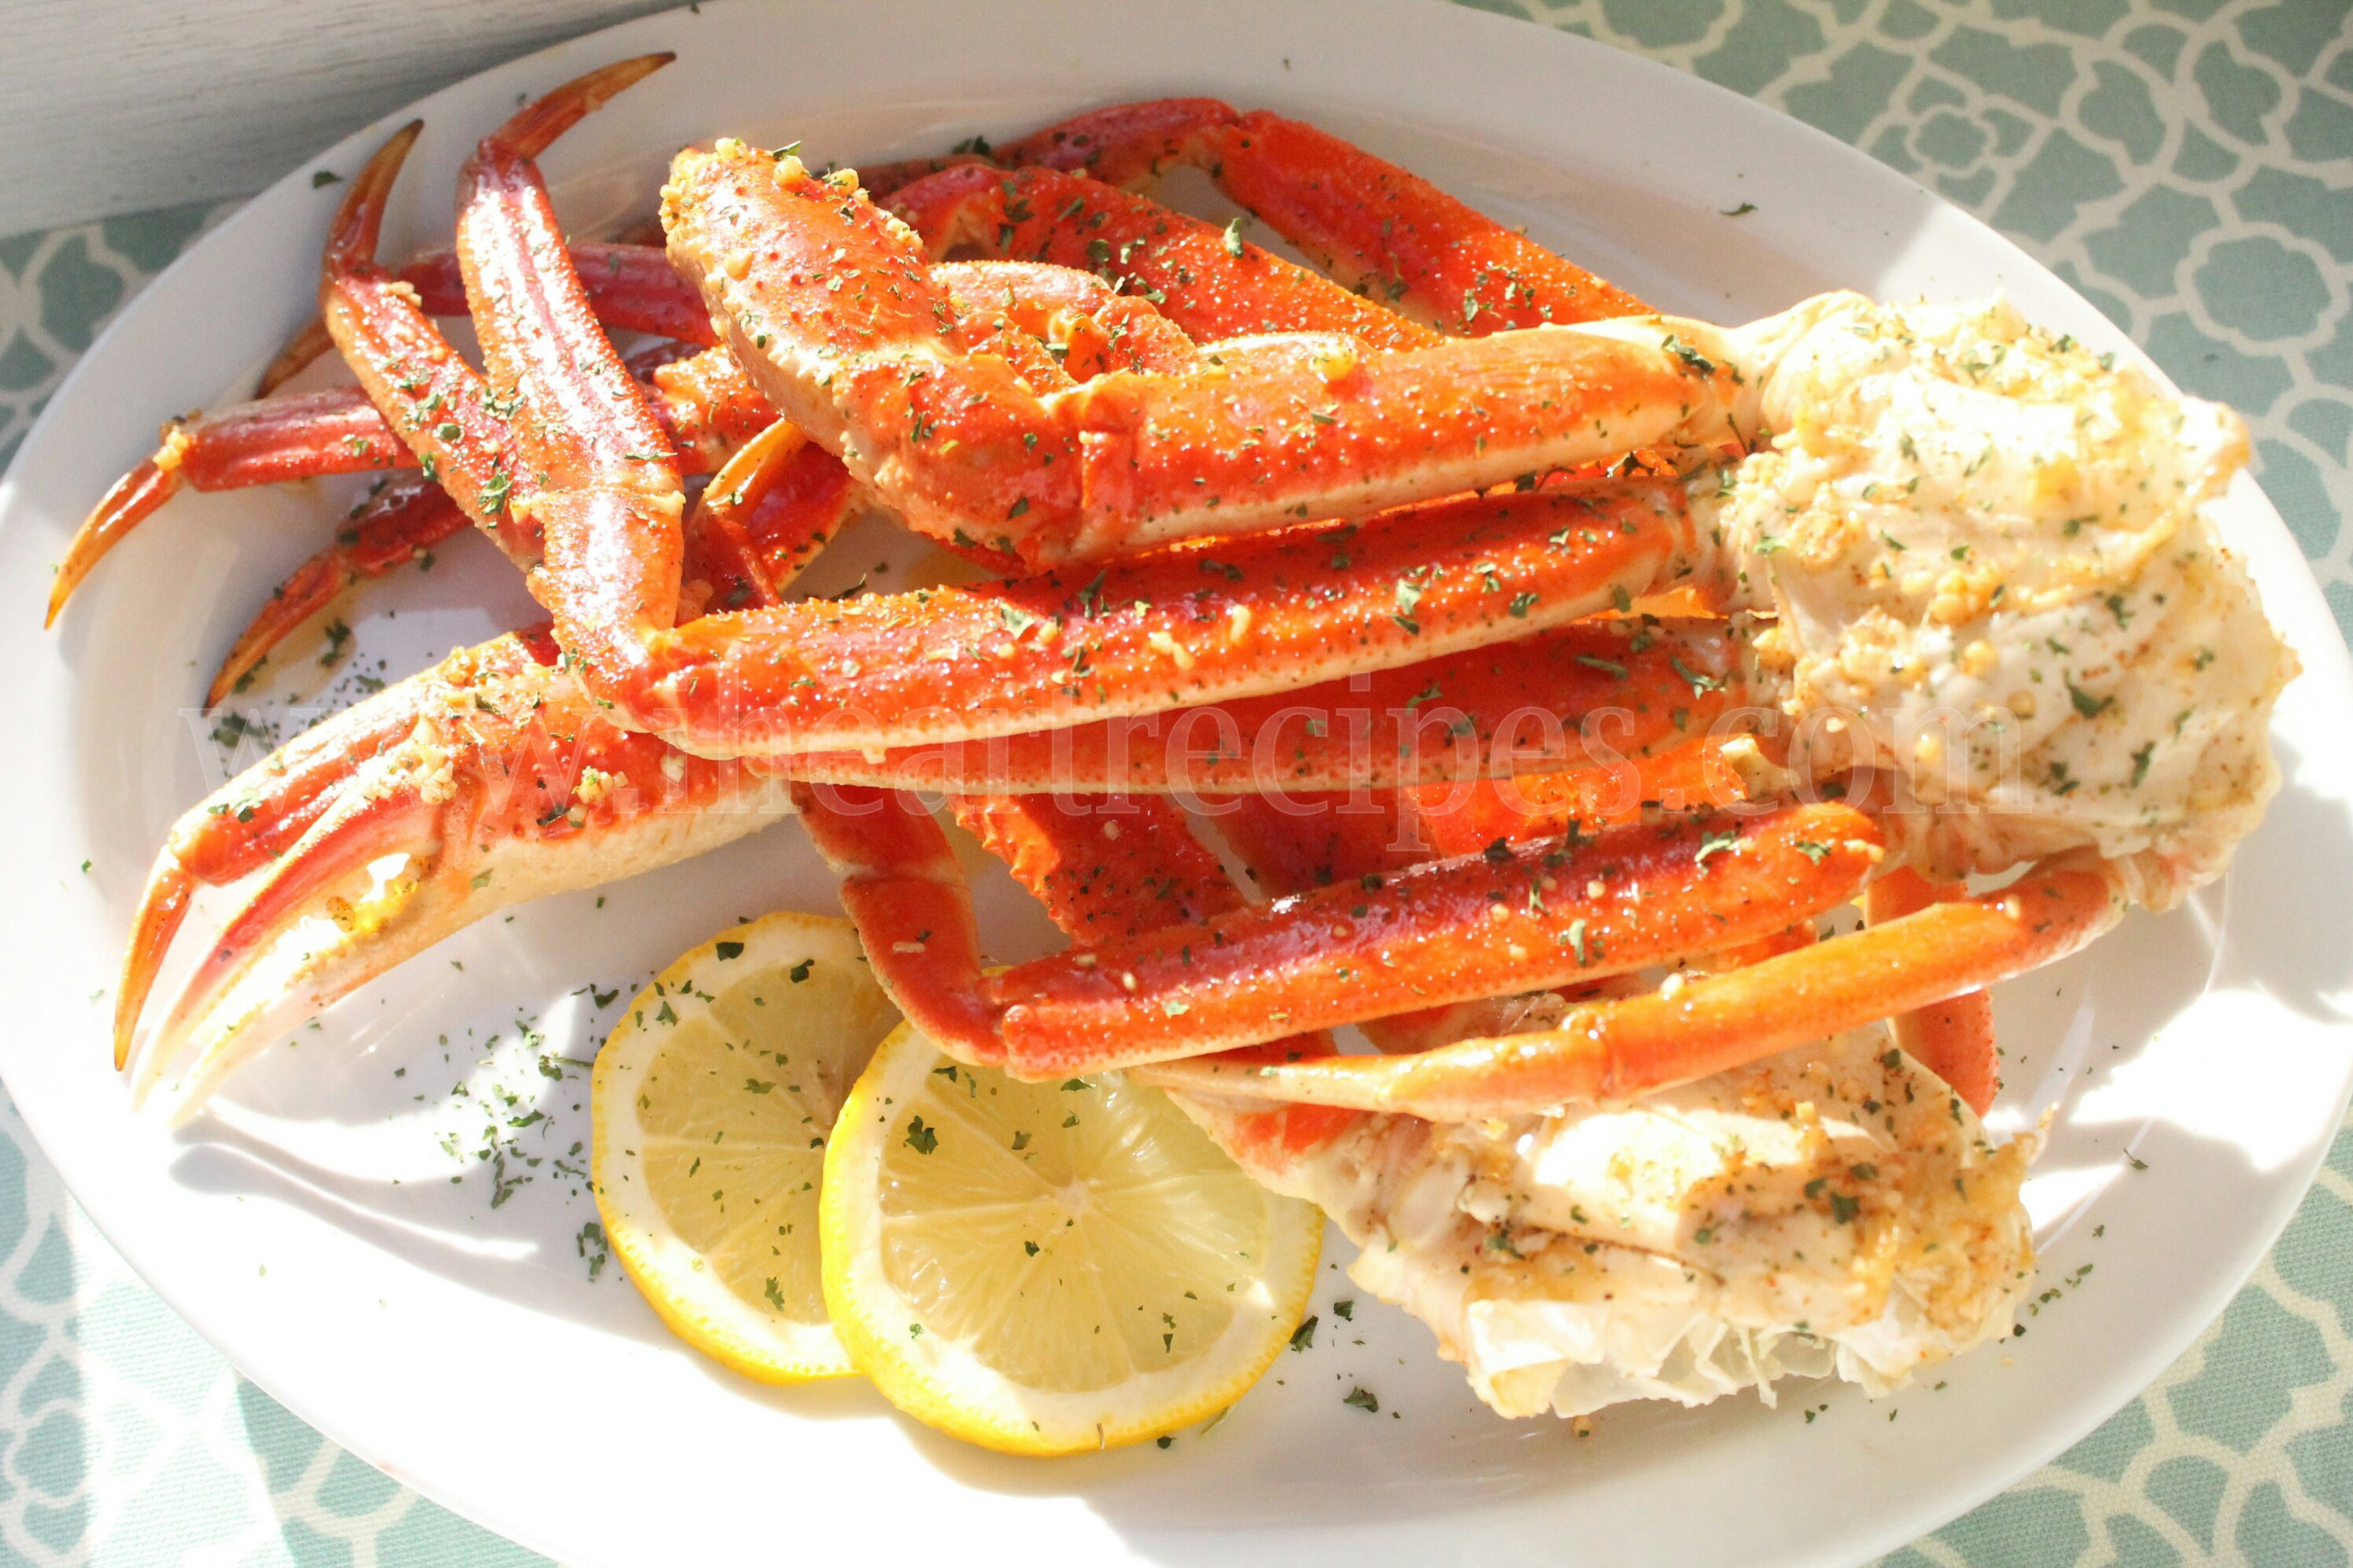 This super easy crab legs recipe is made in the oven, with tons of delicious butter, garlic, and lemon.